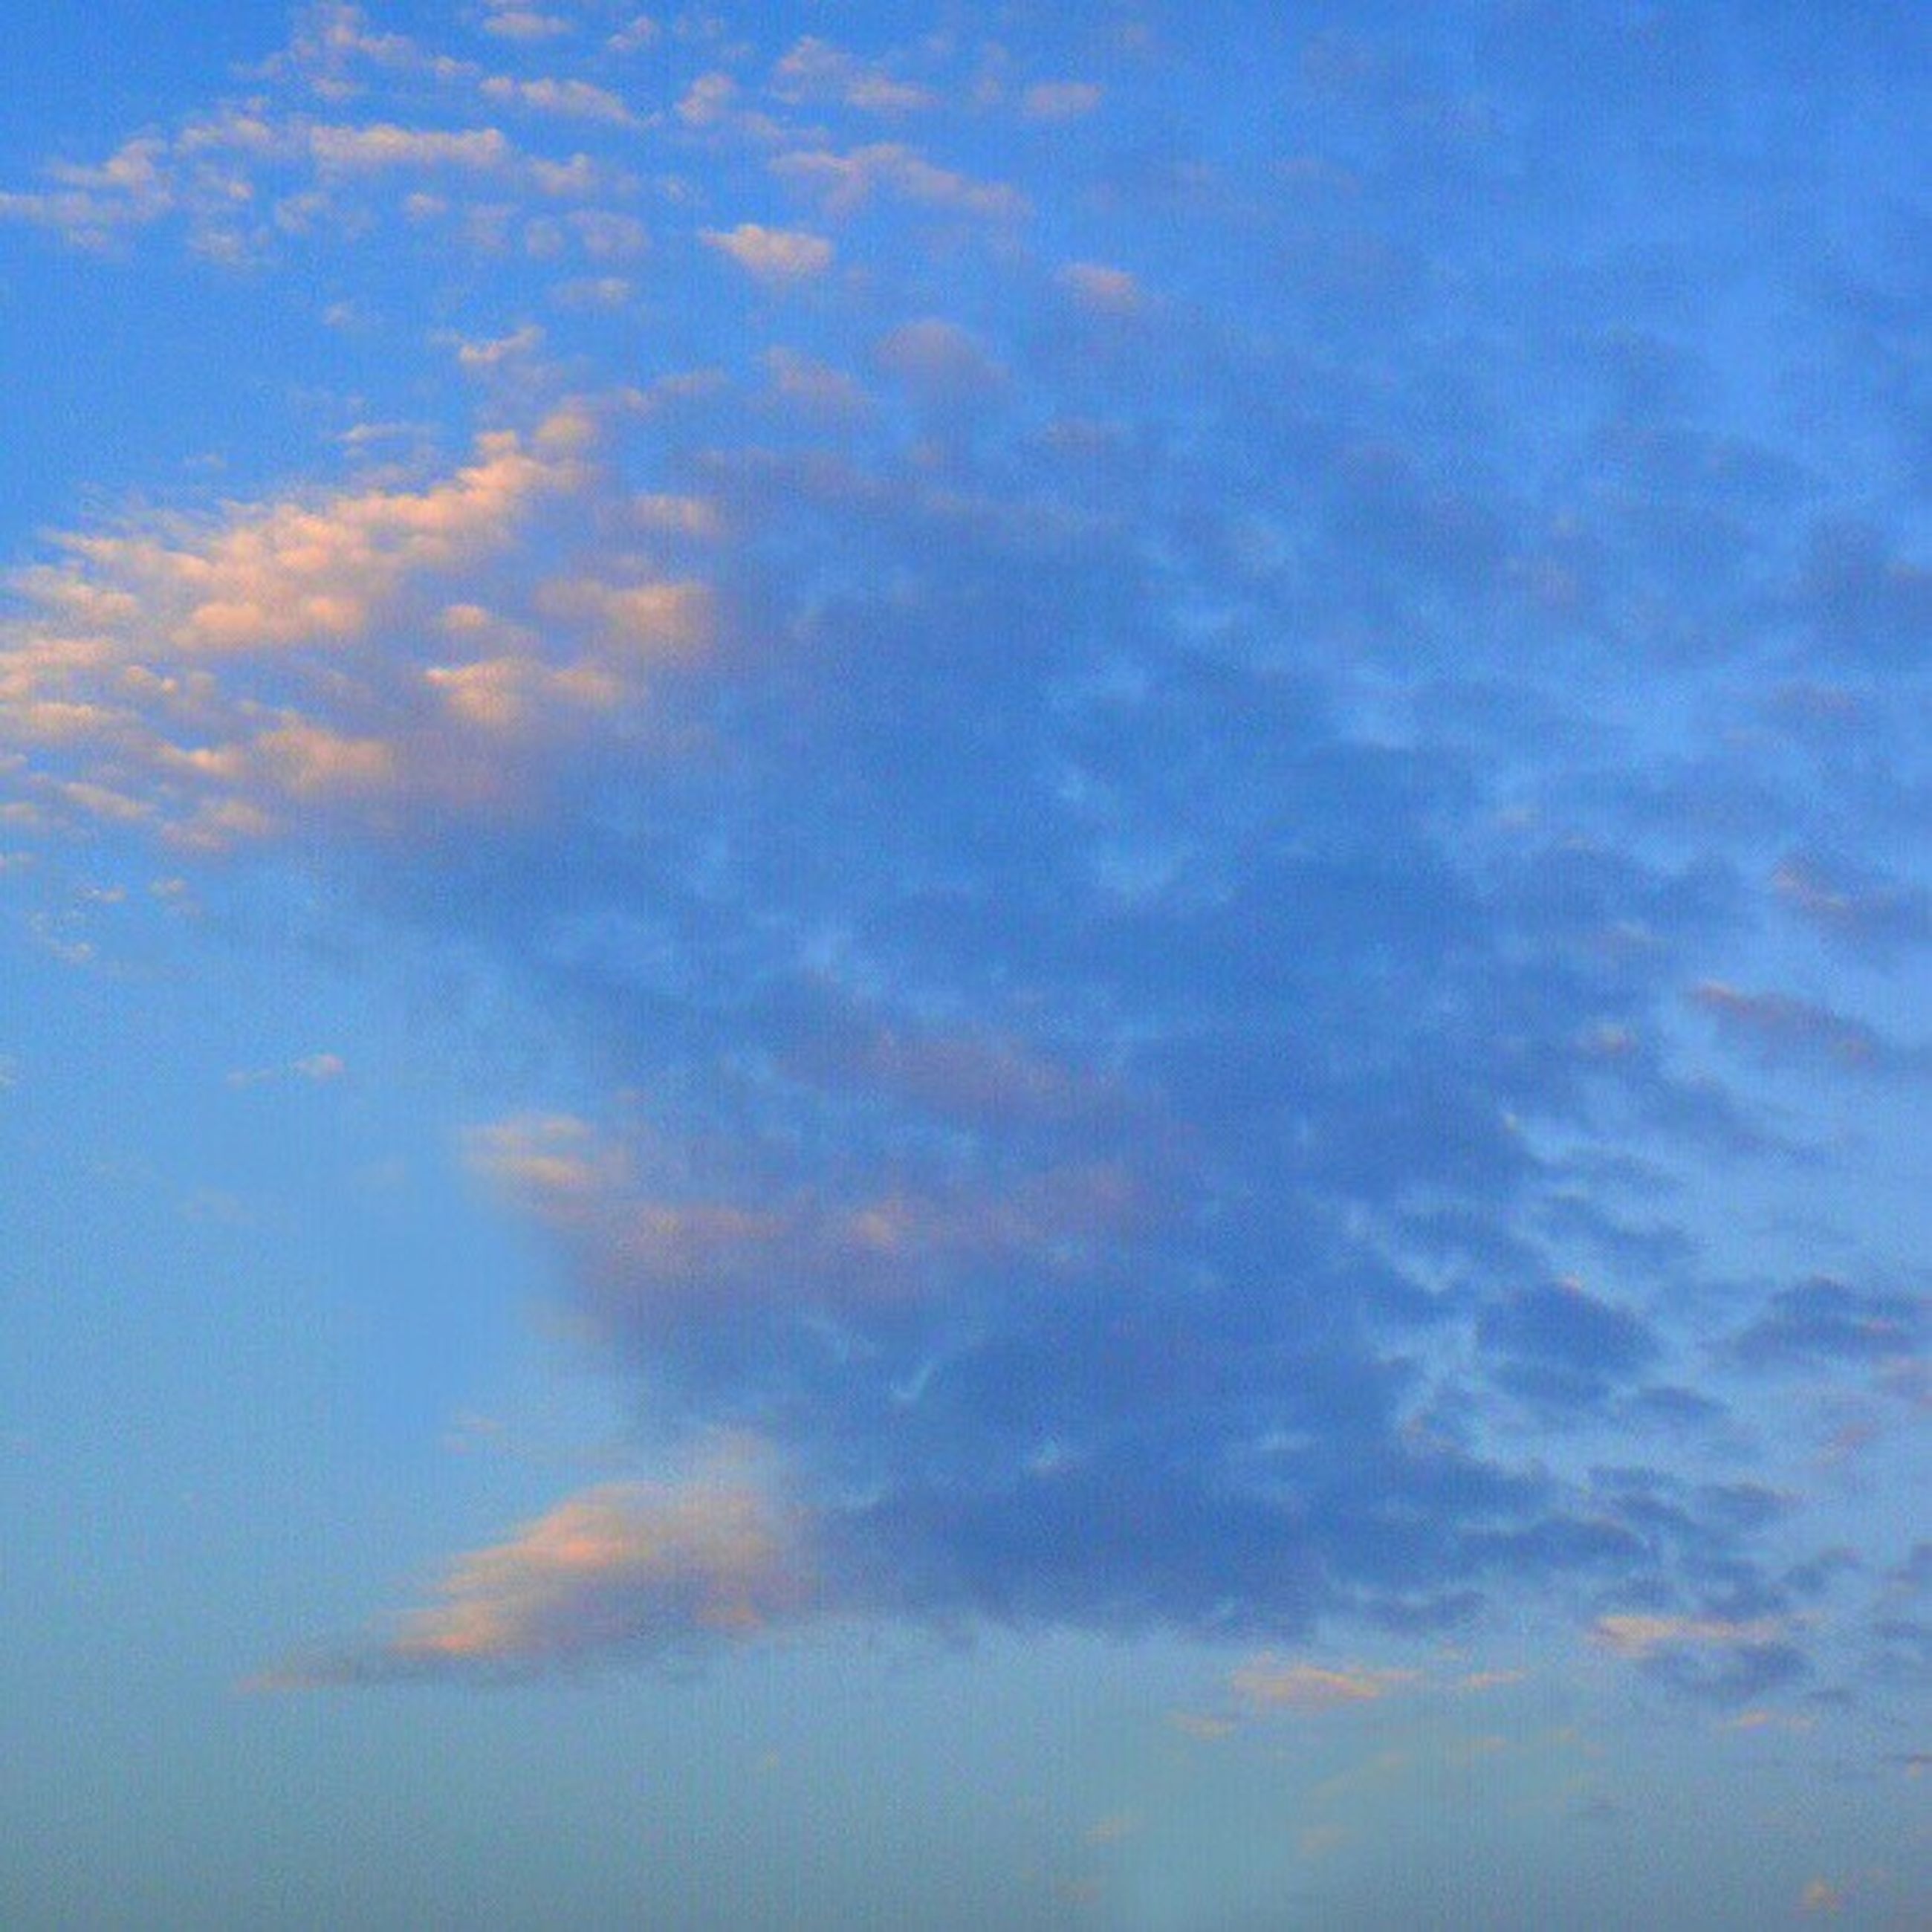 sky, blue, cloud - sky, beauty in nature, low angle view, tranquility, scenics, tranquil scene, backgrounds, nature, sky only, full frame, idyllic, cloud, cloudy, cloudscape, outdoors, no people, day, majestic